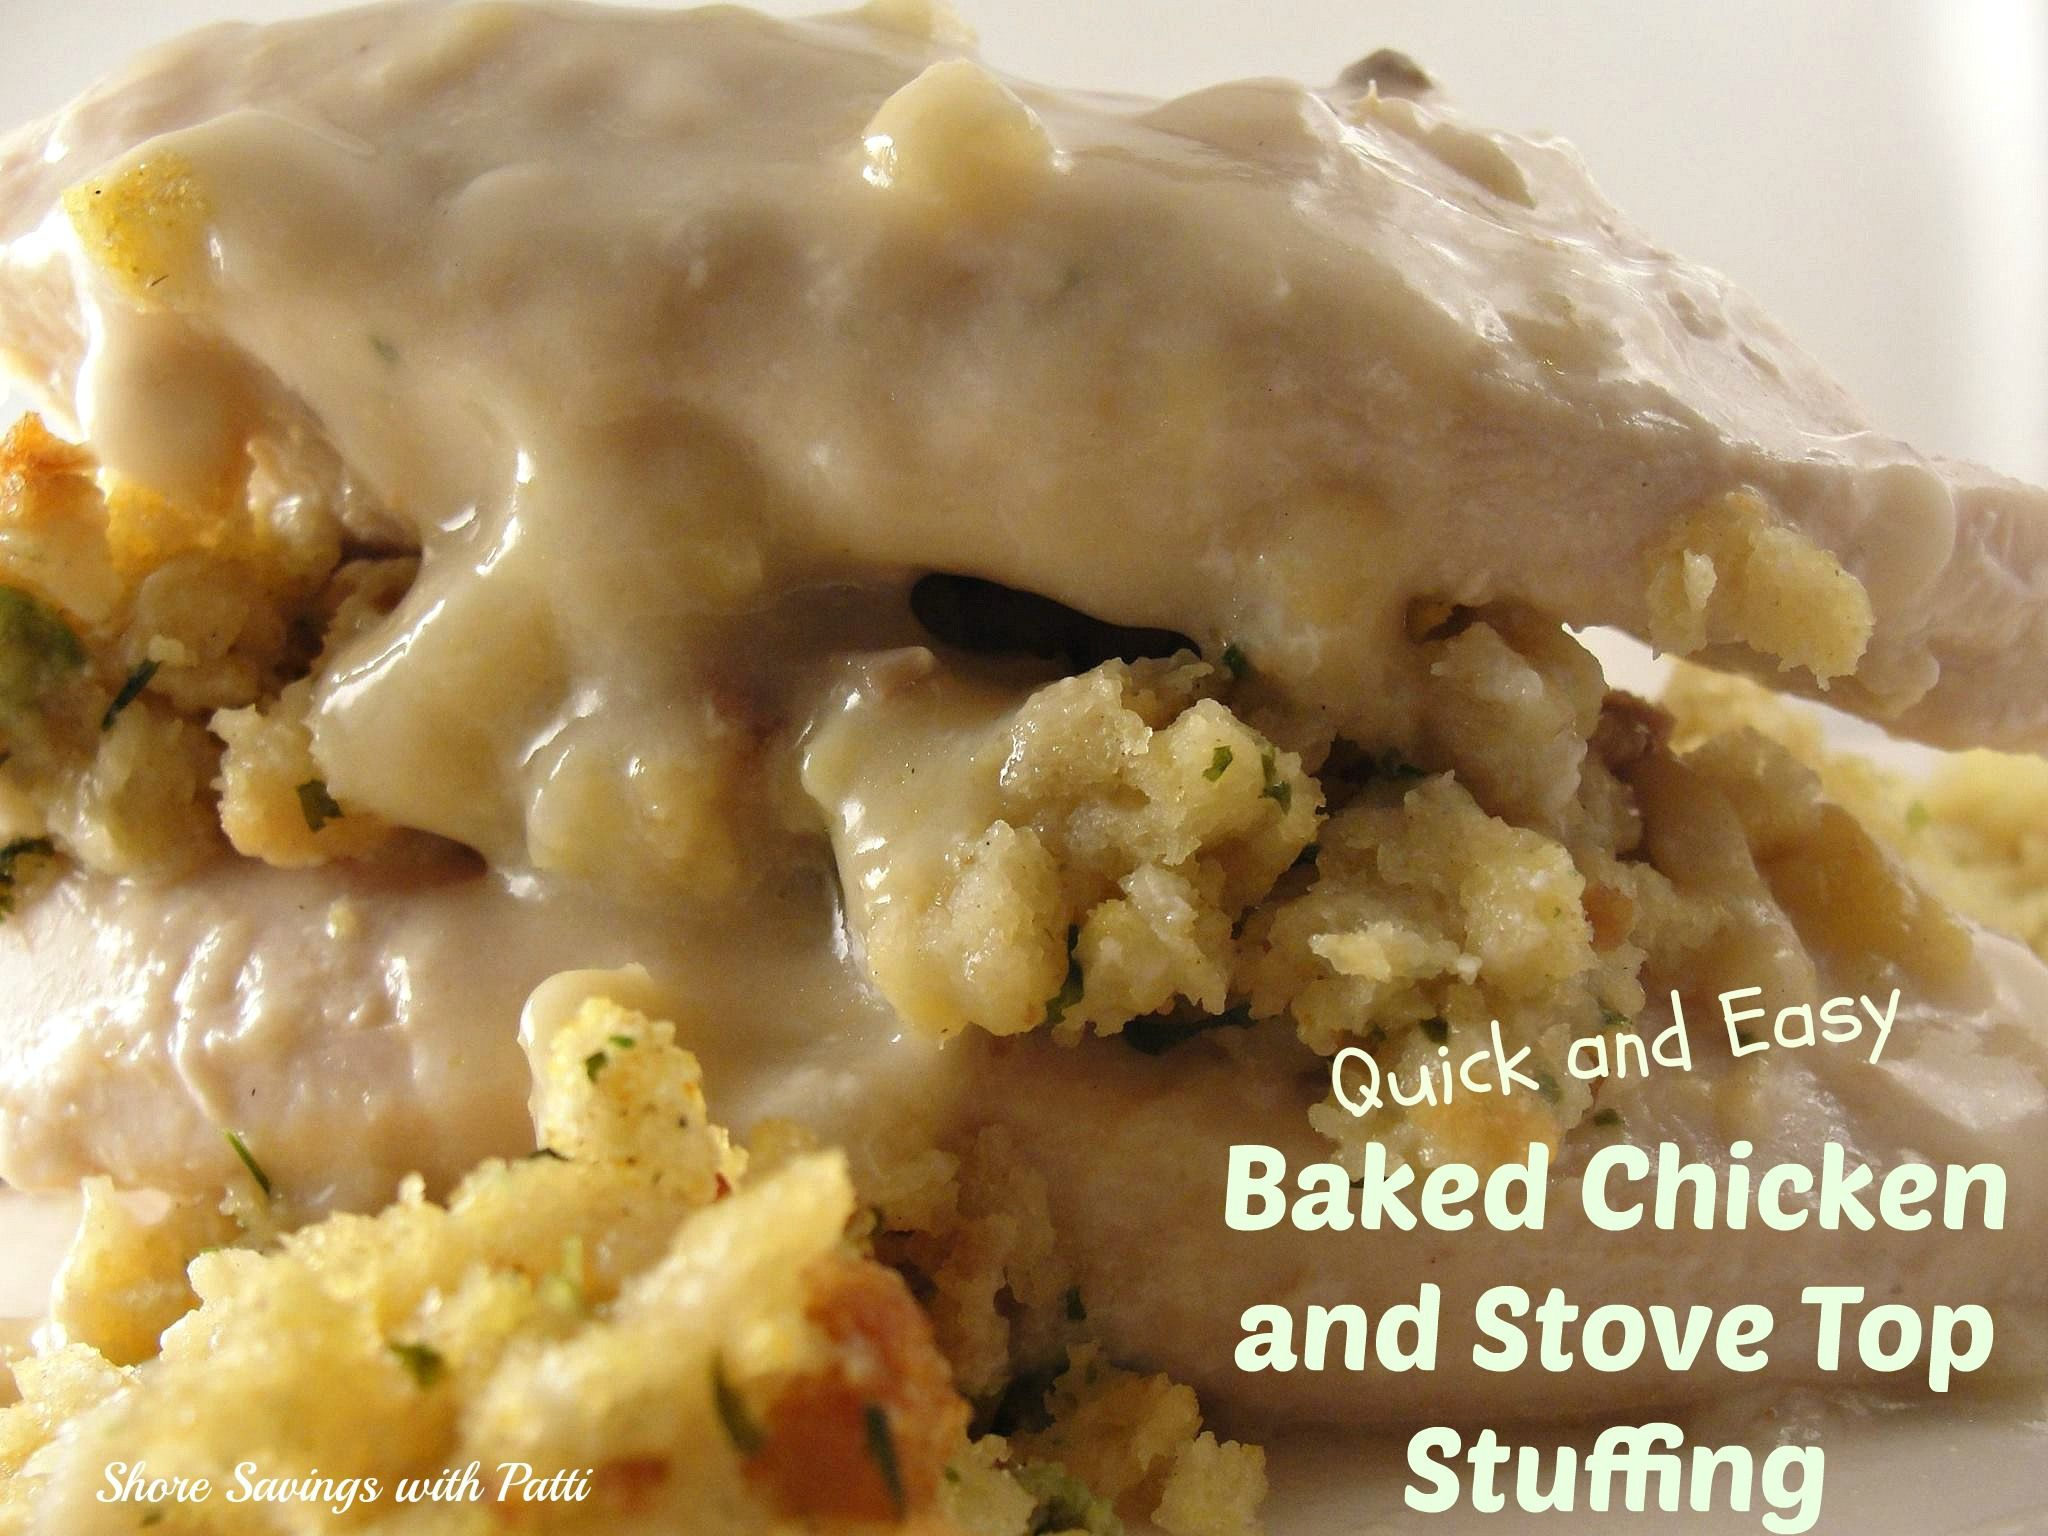 QUICK AND EASY BAKED CHICKEN AND STOVE TOP STUFFING #RECIPE - Shore Savings With Patti